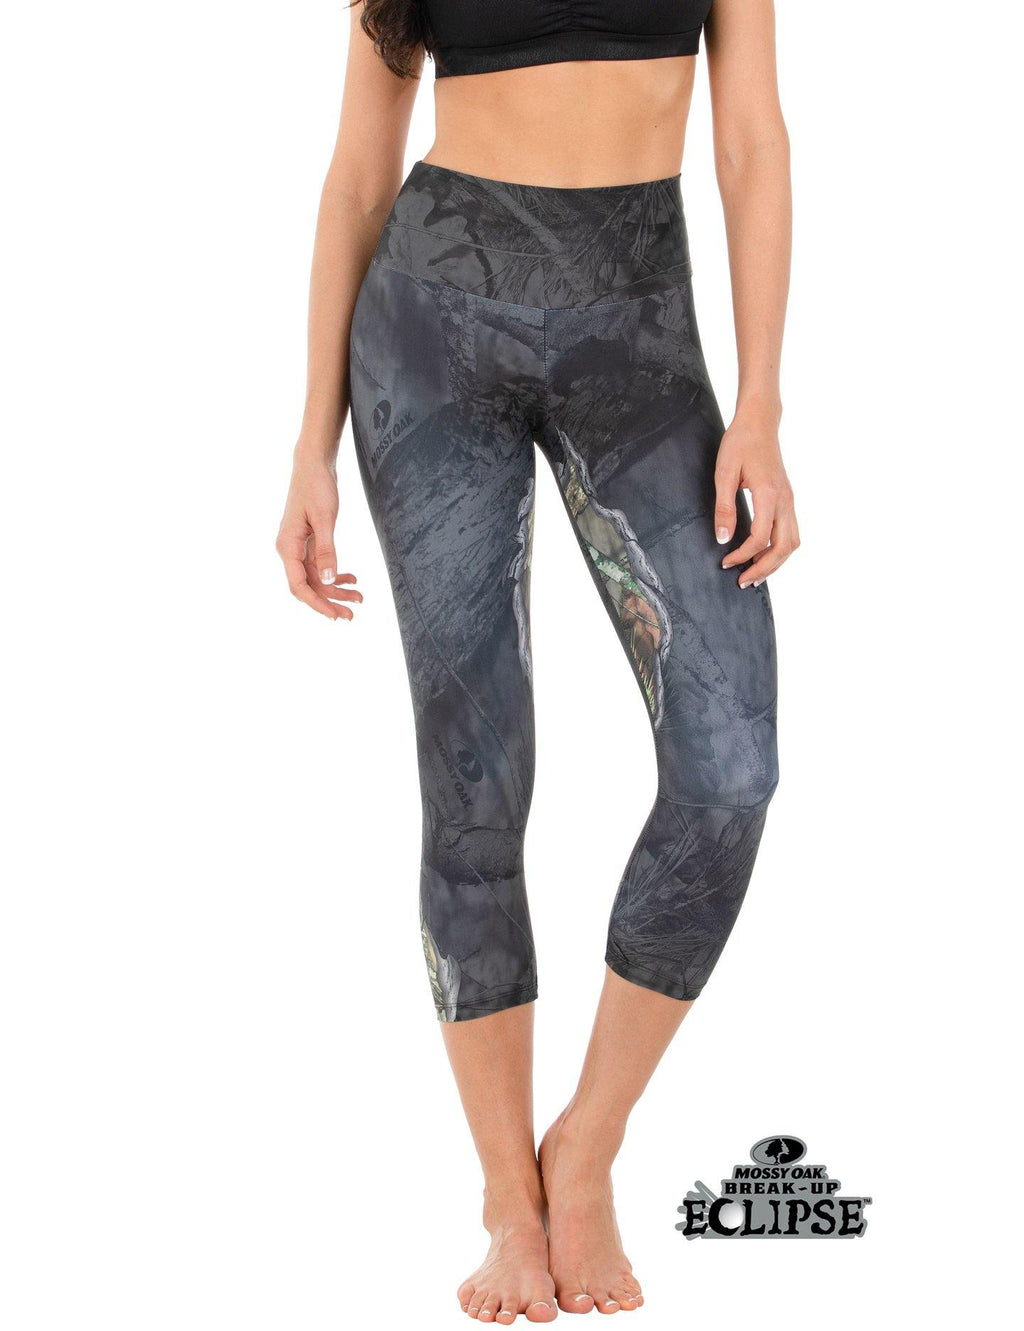 Apsara Leggings High Waist Capri, Mossy Oak Break-Up Eclipse